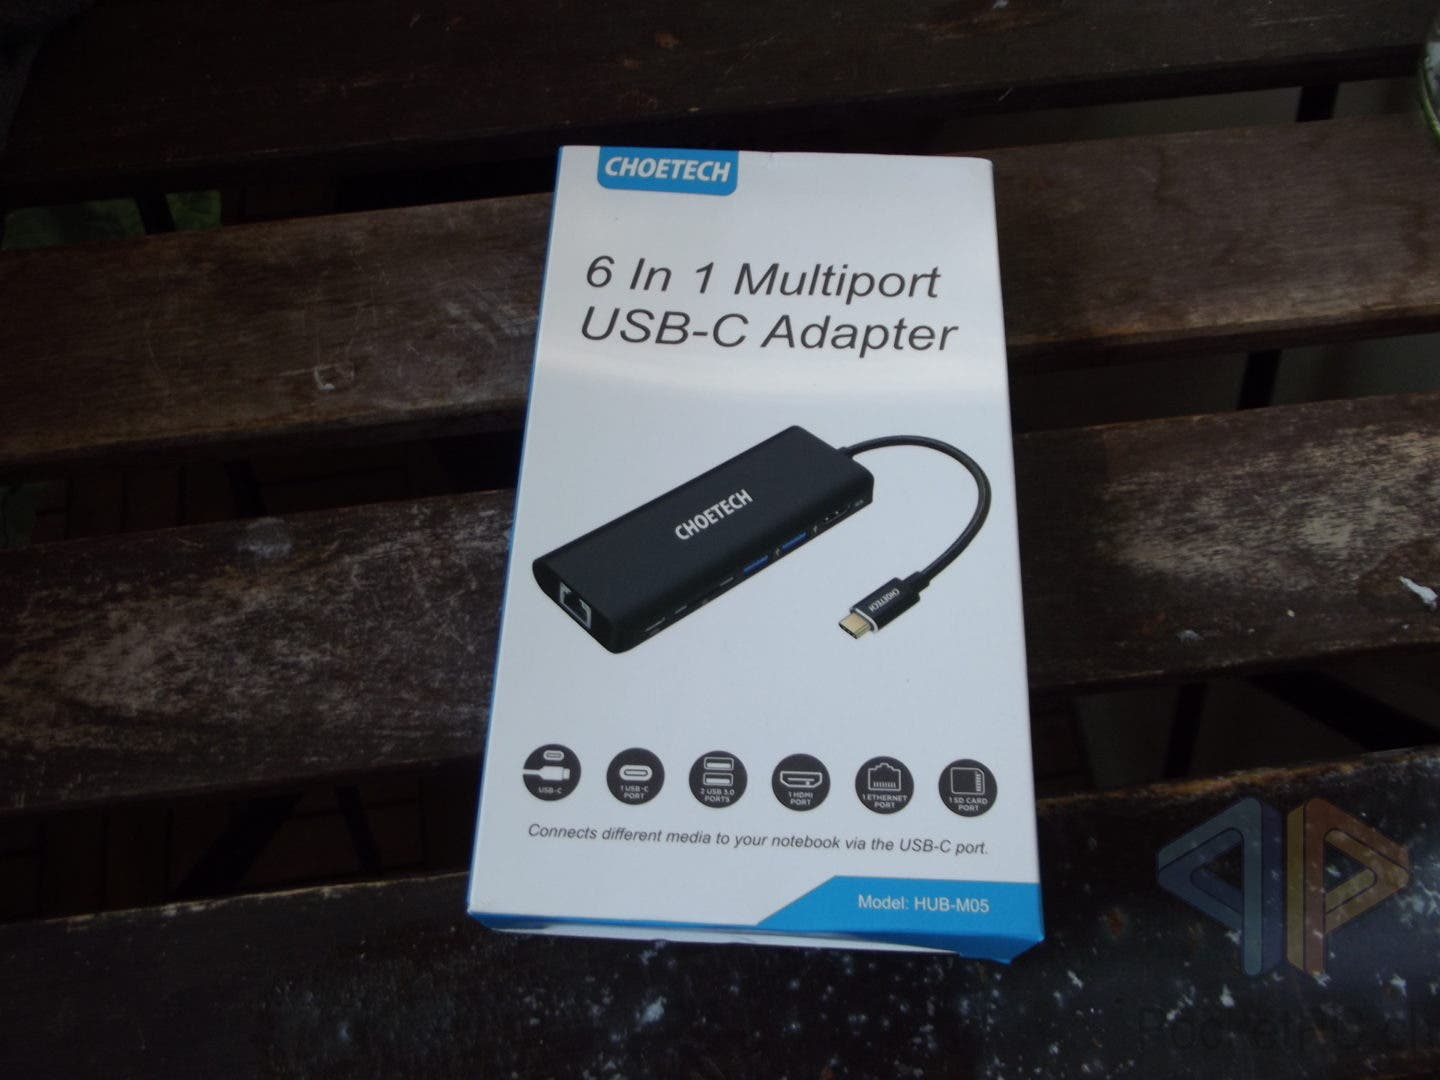 Choetech 6 In 1 Multiport USB-C Adapter